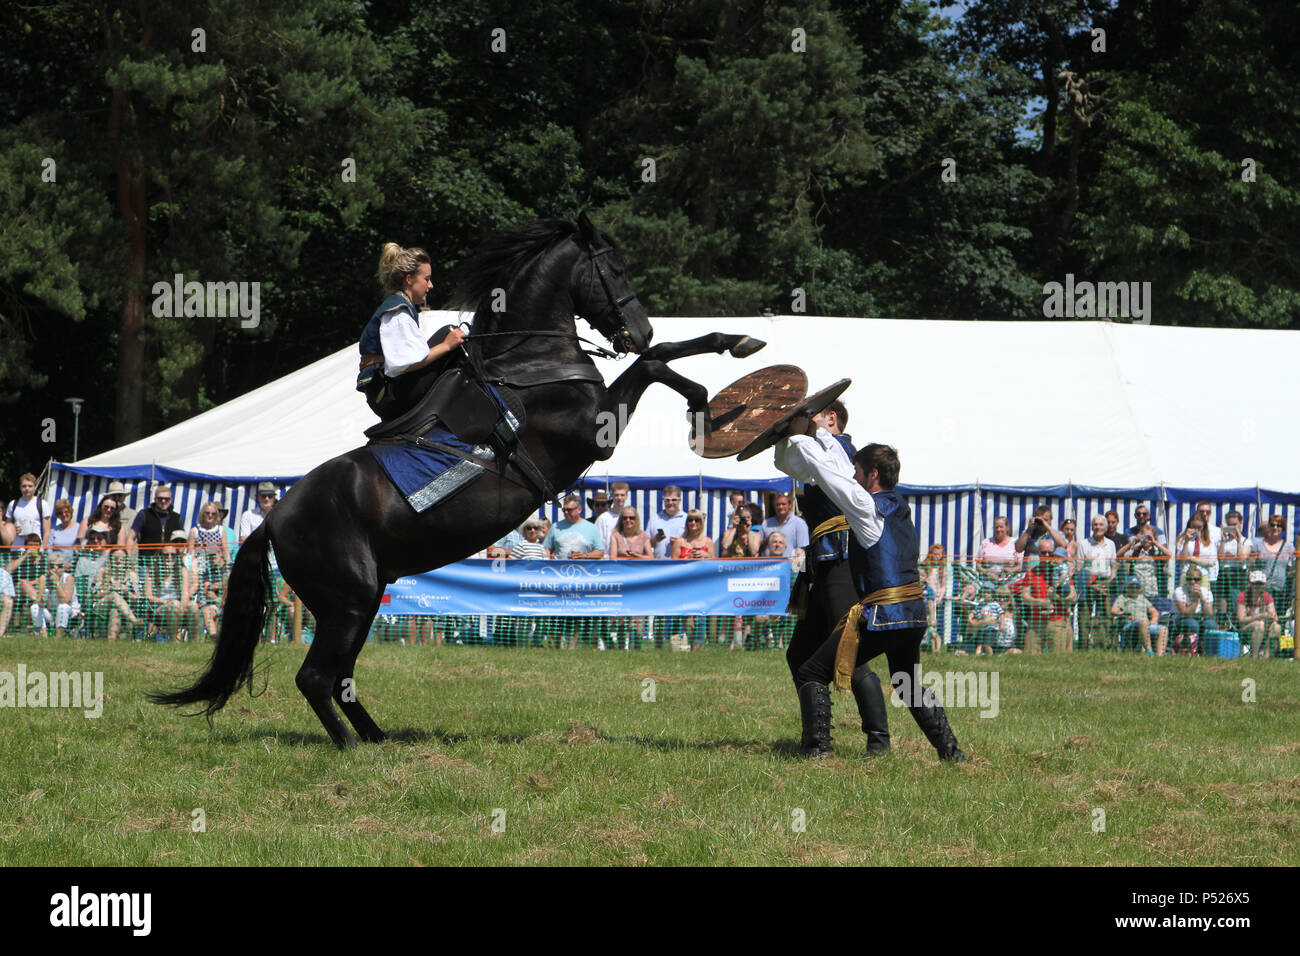 Yorkshire, UK. 24 June 2018. Huby and Sutton Agricultural Show North Yorkshire - Atkinson Action Horses Display Team Credit: credit: Matt Pennington / PennPix/Alamy Live News - Stock Image